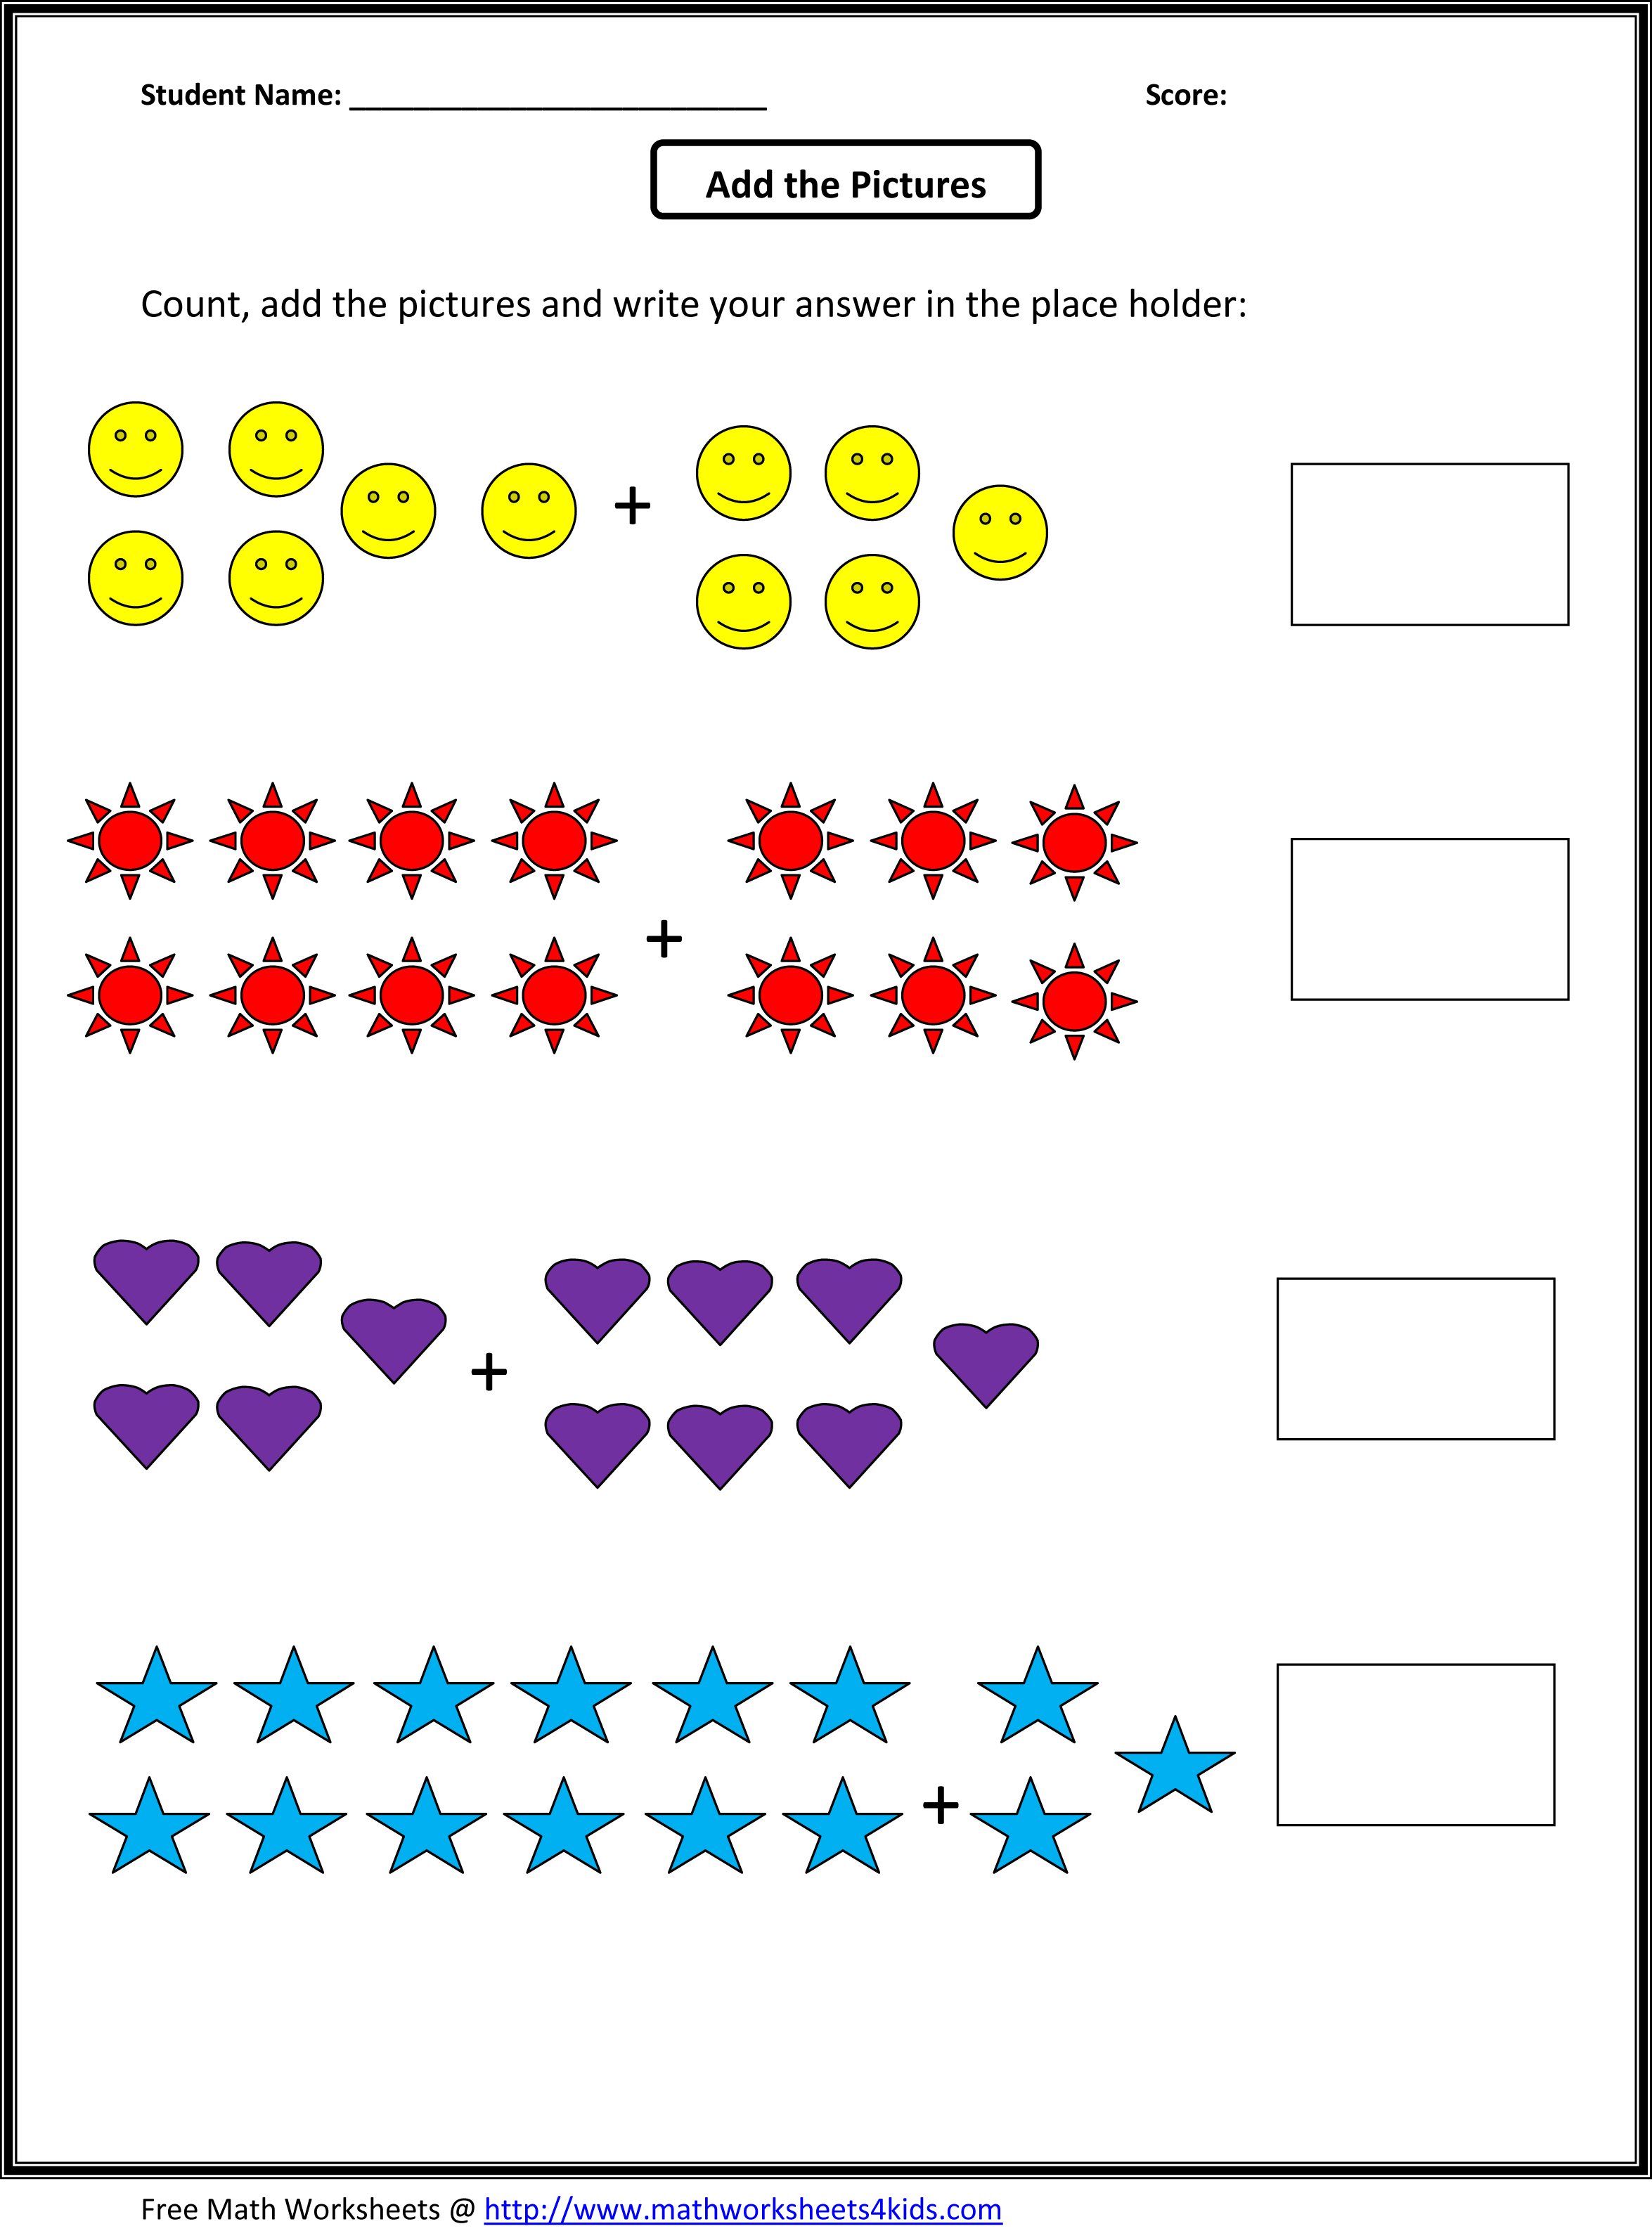 Weirdmailus  Wonderful Grade  Maths Worksheet  Reocurent With Excellent Math Worksheets For St Grade Free  Reocurent With Astounding Alternate And Corresponding Angles Worksheet Also Be The Teacher Worksheets In Addition Au Phonics Worksheets And Number Word Worksheets For First Grade As Well As Sudoku Printable Worksheets Additionally Free Reading Comprehension Worksheets For First Grade From Reocurentcom With Weirdmailus  Excellent Grade  Maths Worksheet  Reocurent With Astounding Math Worksheets For St Grade Free  Reocurent And Wonderful Alternate And Corresponding Angles Worksheet Also Be The Teacher Worksheets In Addition Au Phonics Worksheets From Reocurentcom